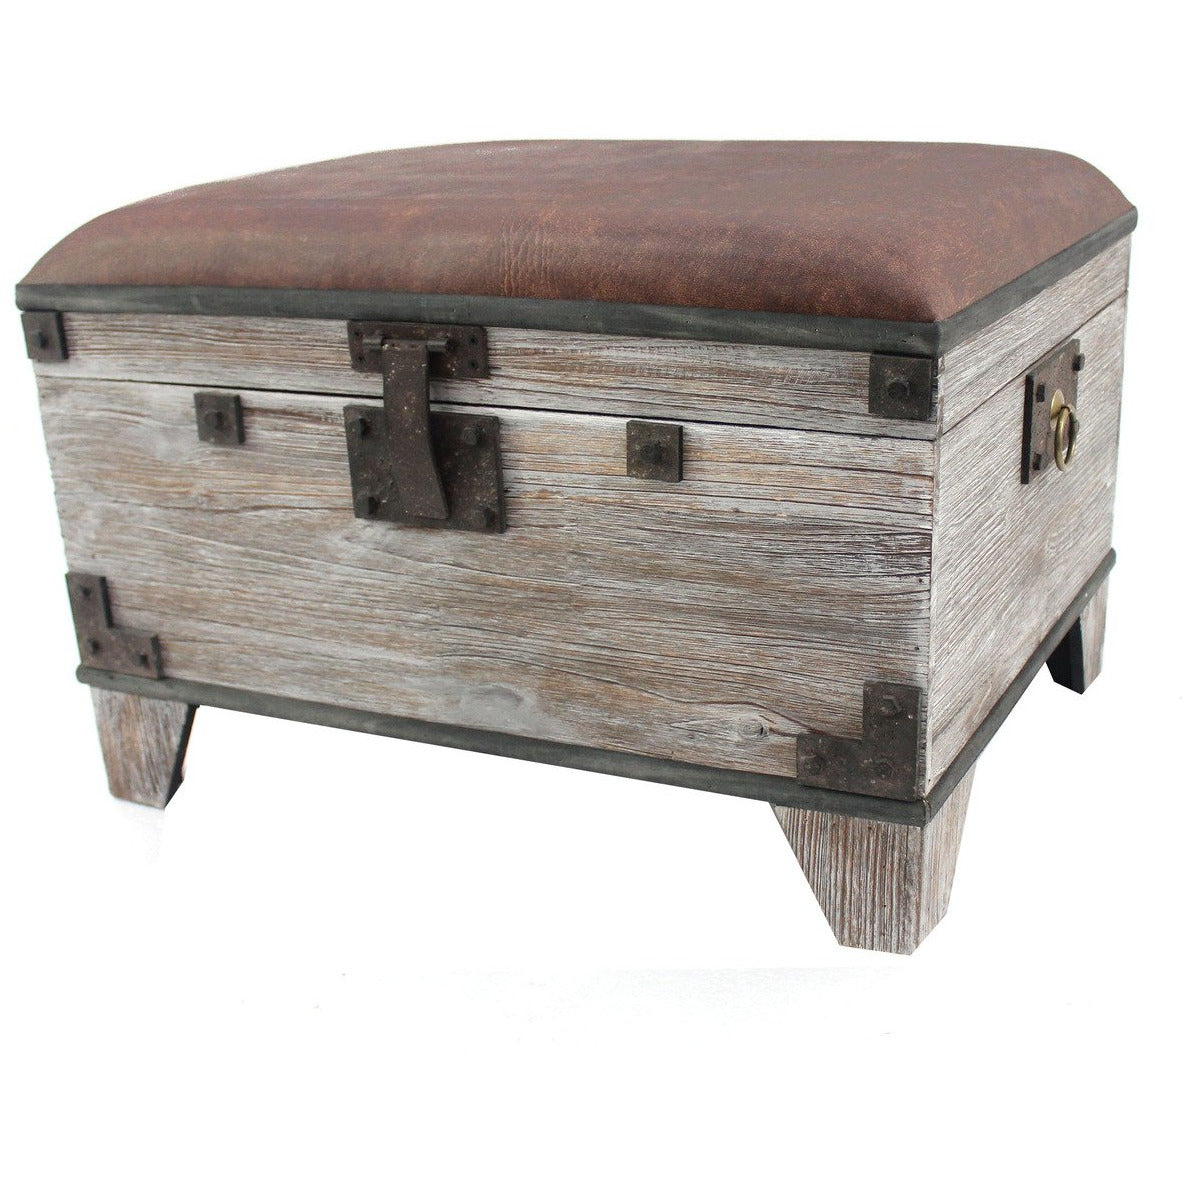 Accent And Storage Benches - Leatherette Lift Top Storage Bench With Block Legs,